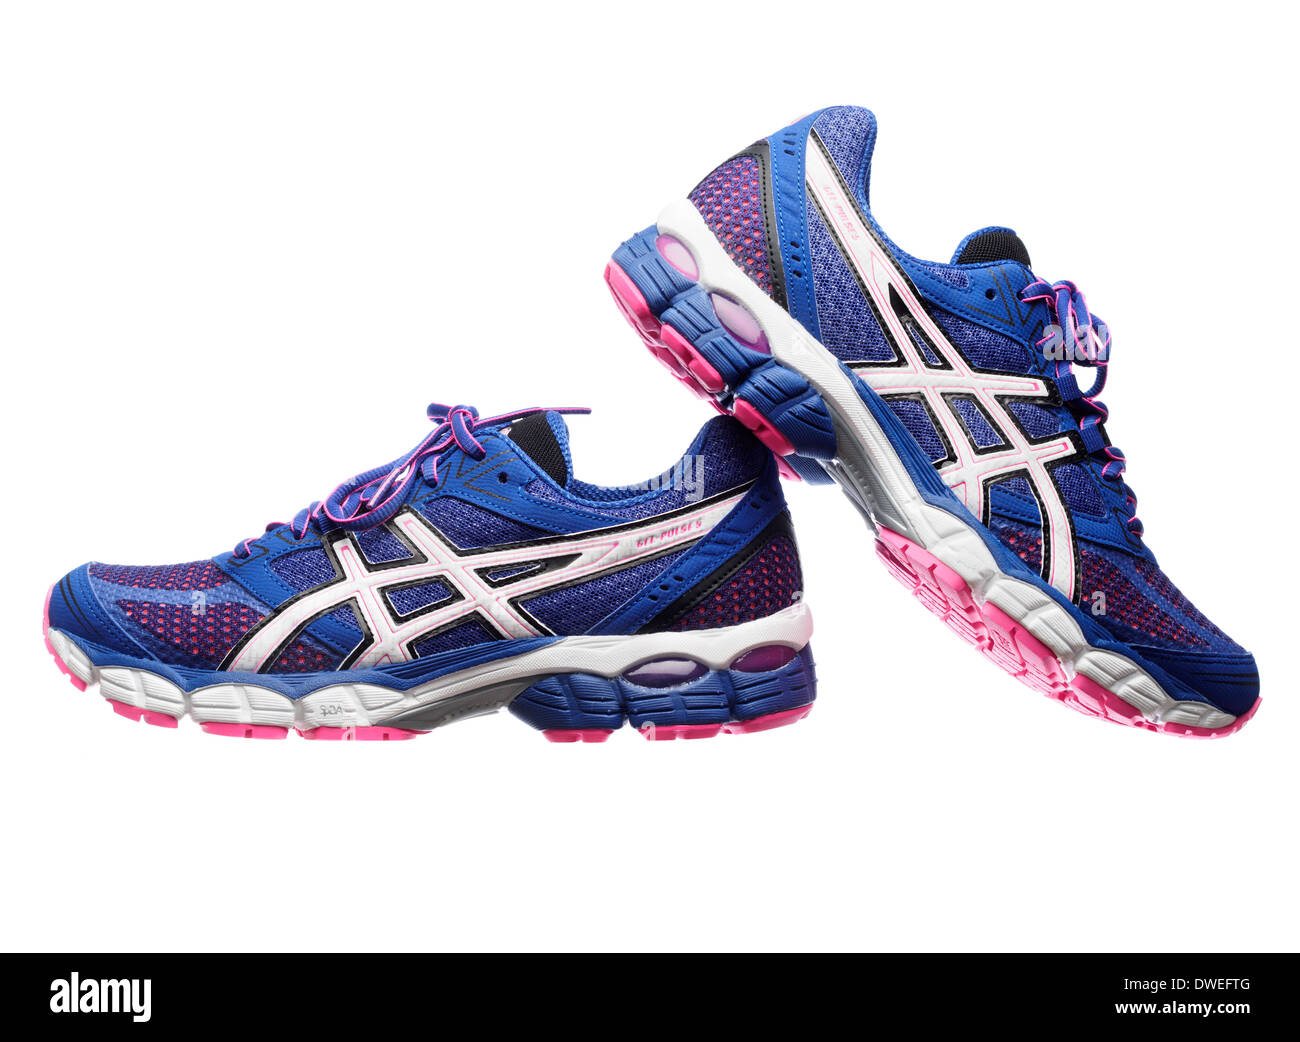 Royaume-Uni disponibilité c11fb c84cb Blue and pink Asics Gel Pulse 5 running shoes Stock Photo ...